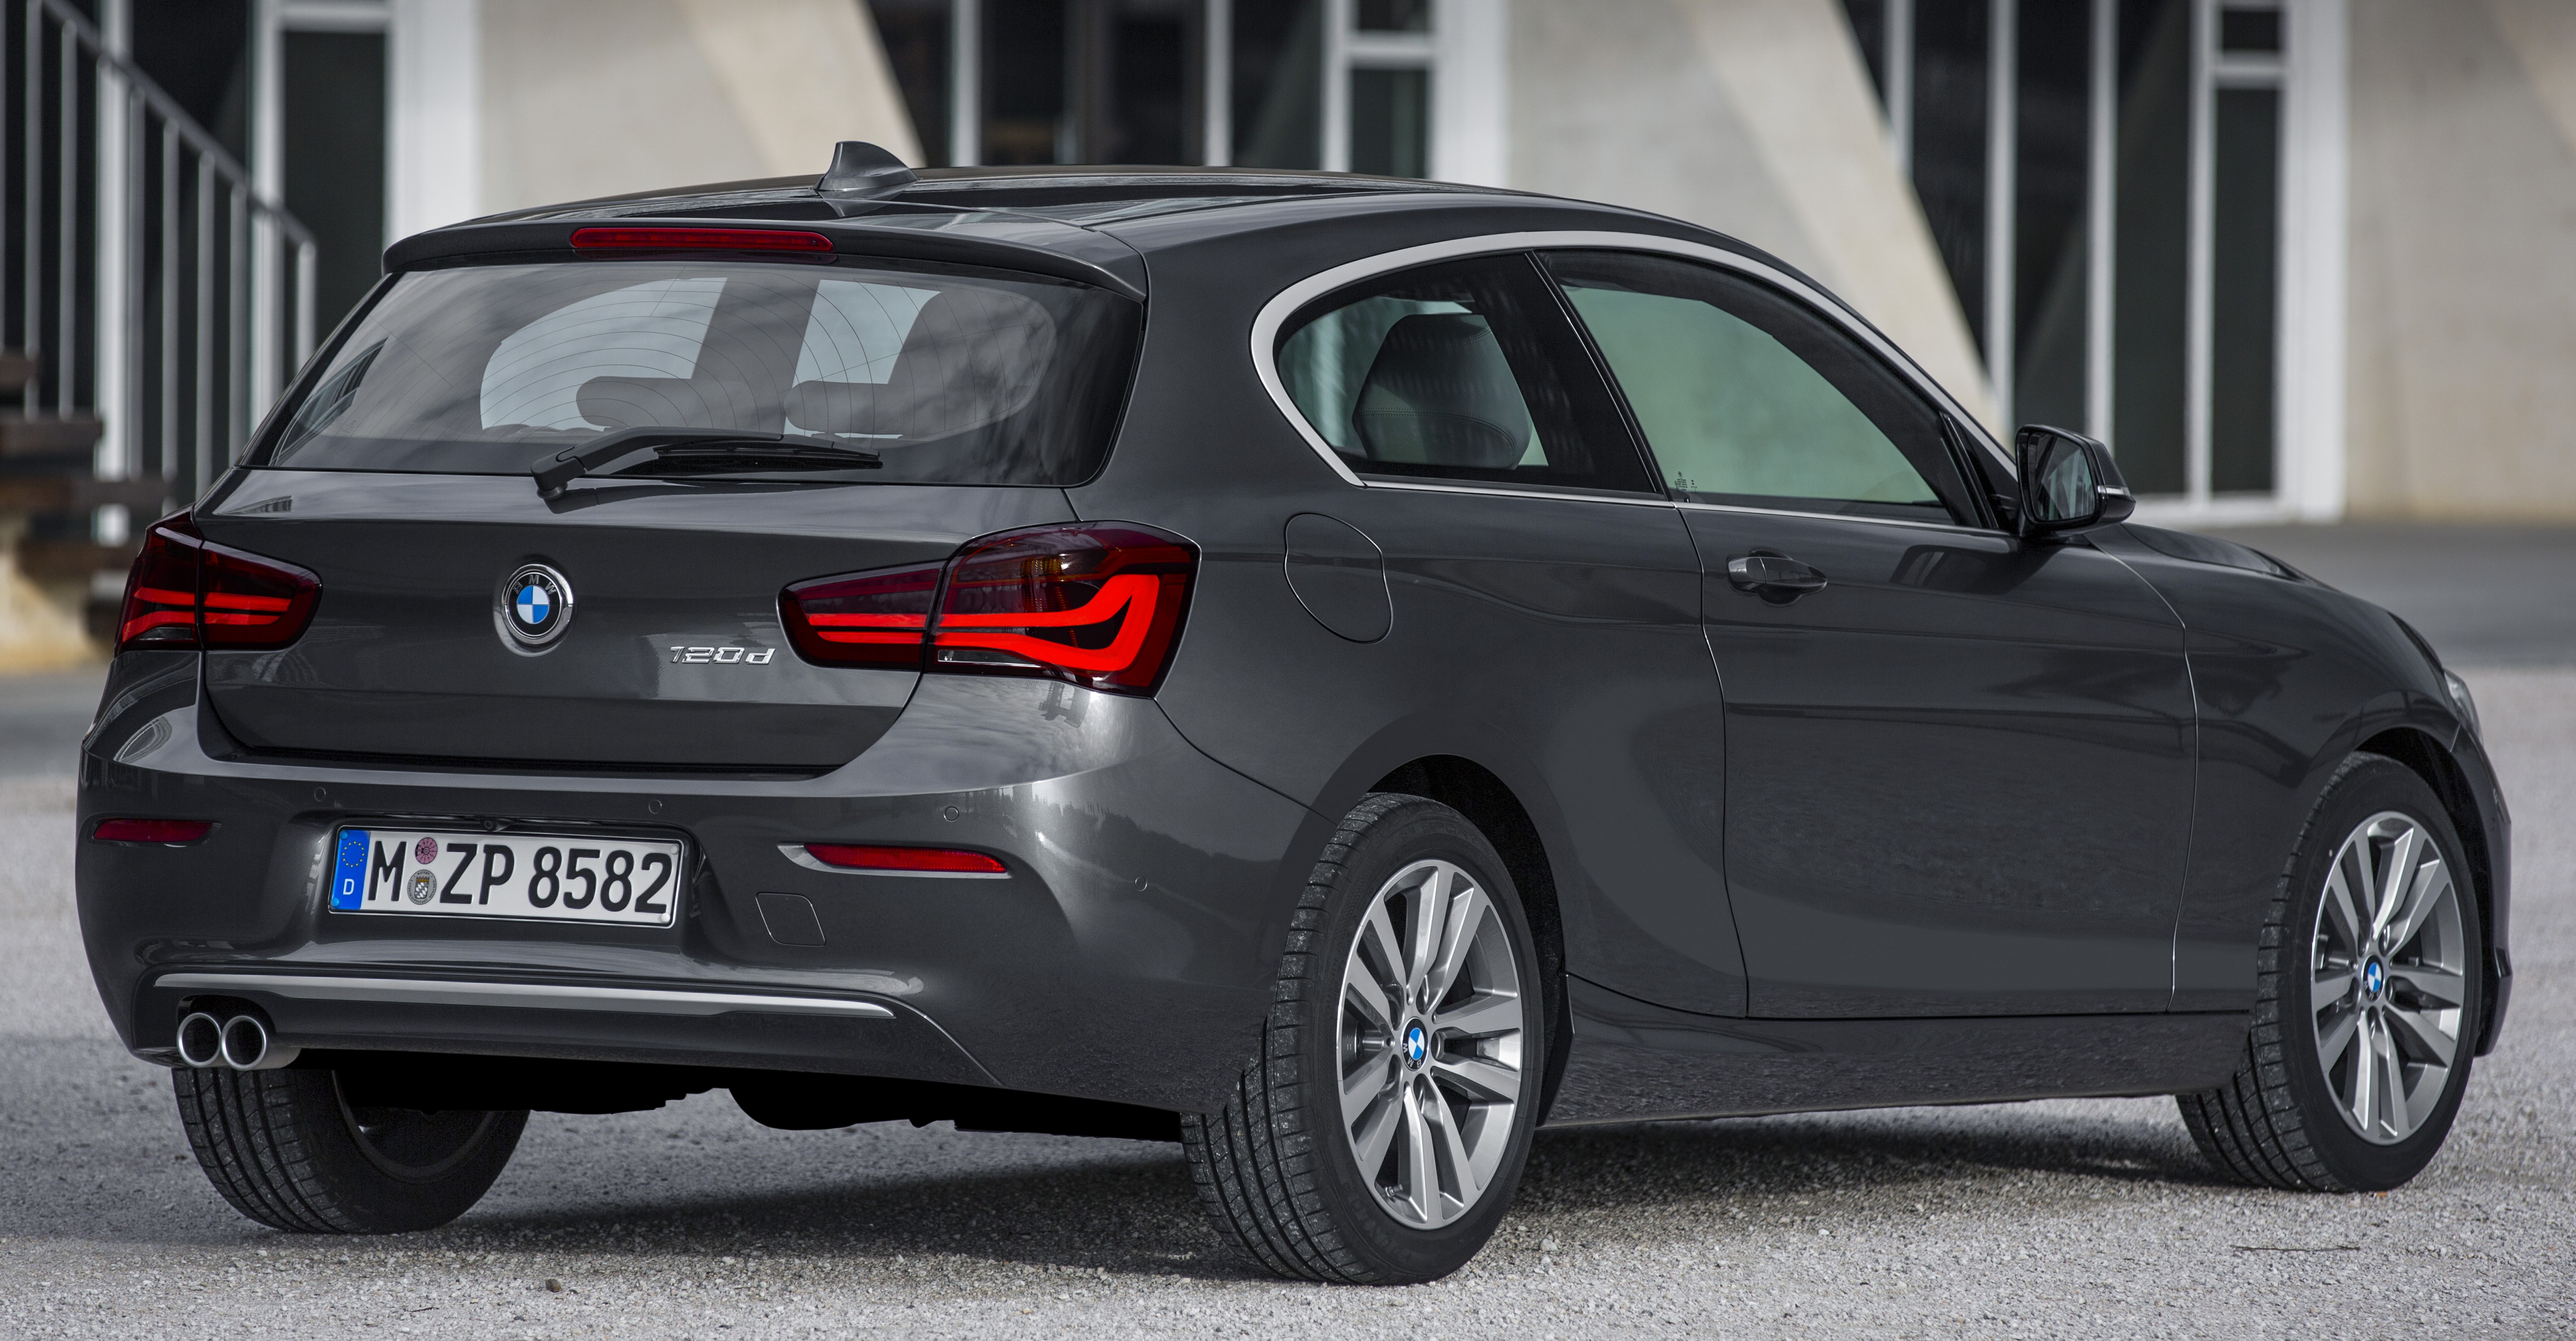 f20 bmw 1 series facelift unveiled new face and rear end 116i and 116d get 1 5 litre three. Black Bedroom Furniture Sets. Home Design Ideas